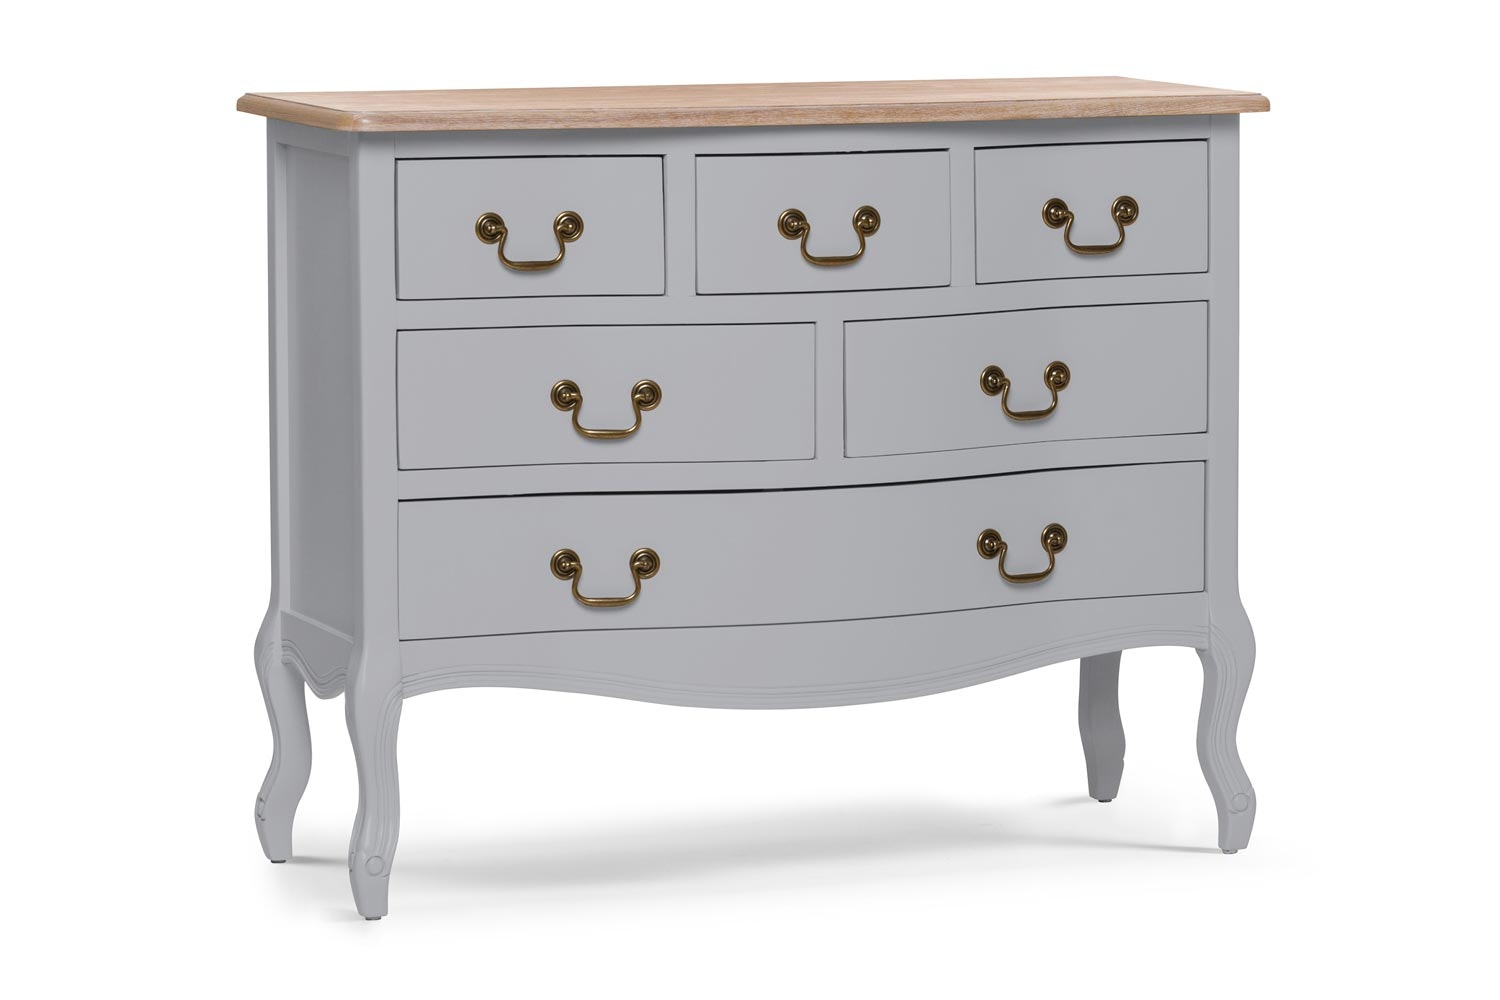 Bouvard Dresser Chest 6 Drawer | Colourtrend